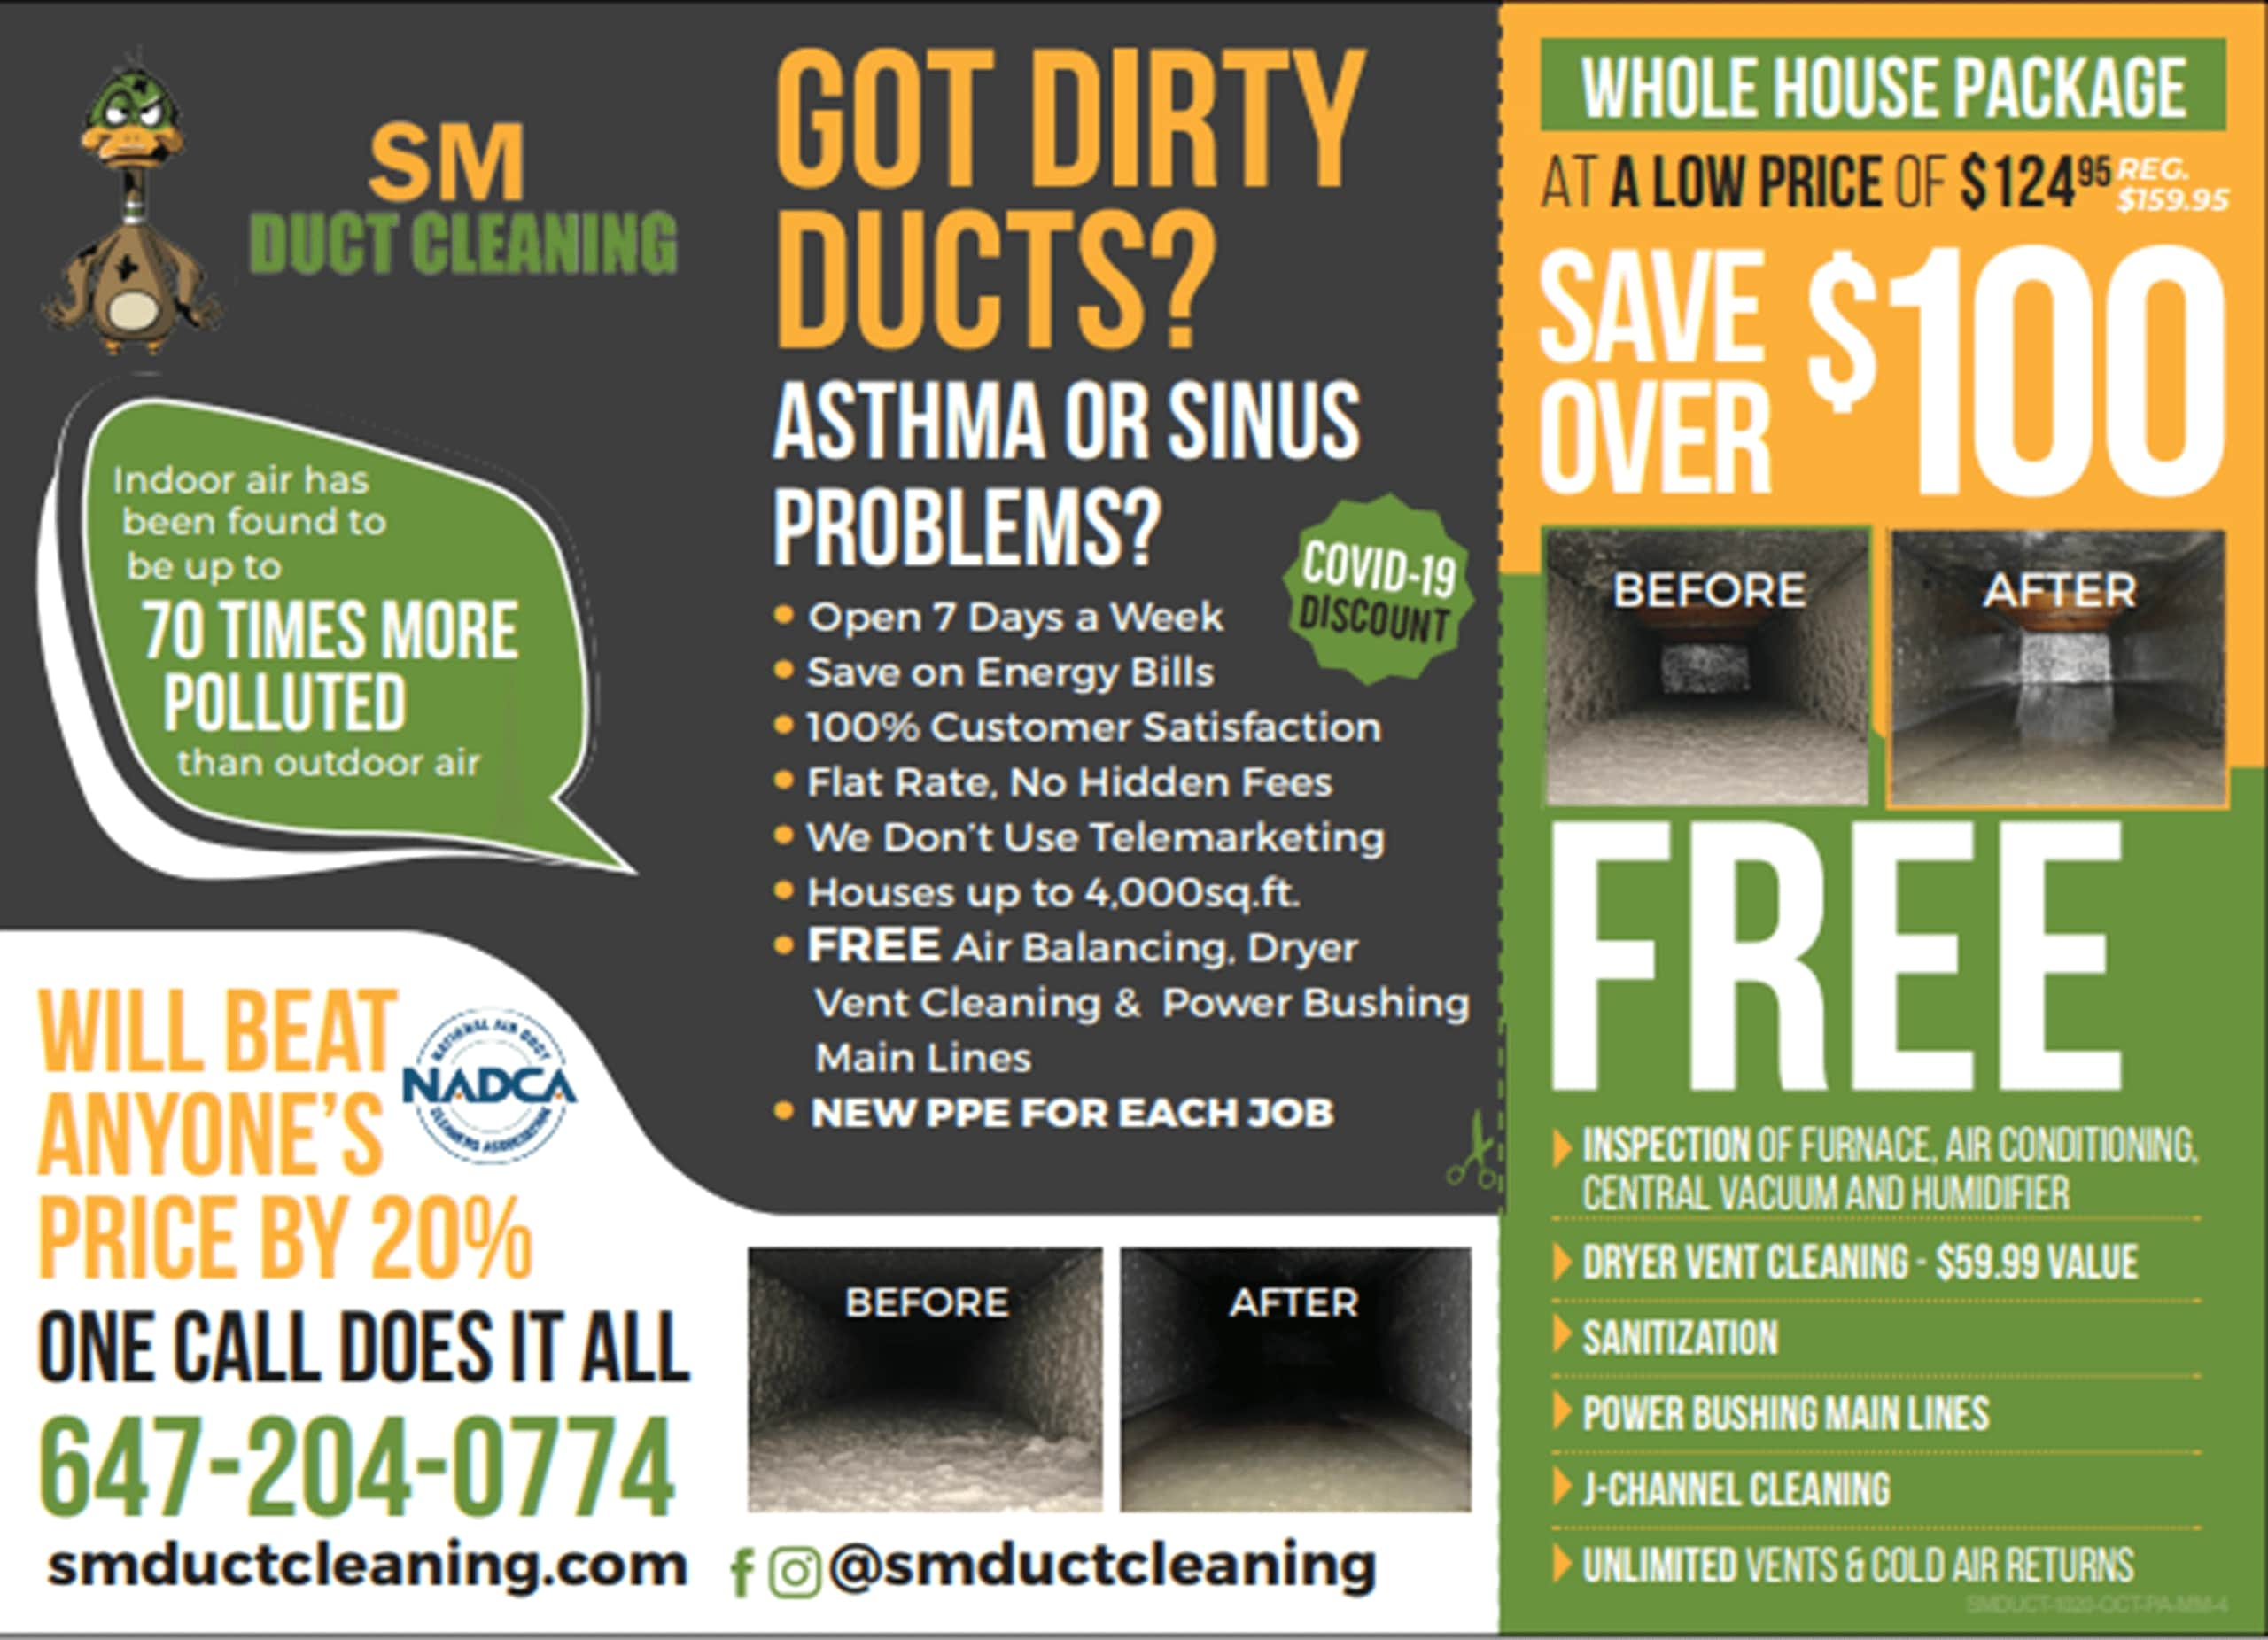 Duct Cleaning in Stouffville